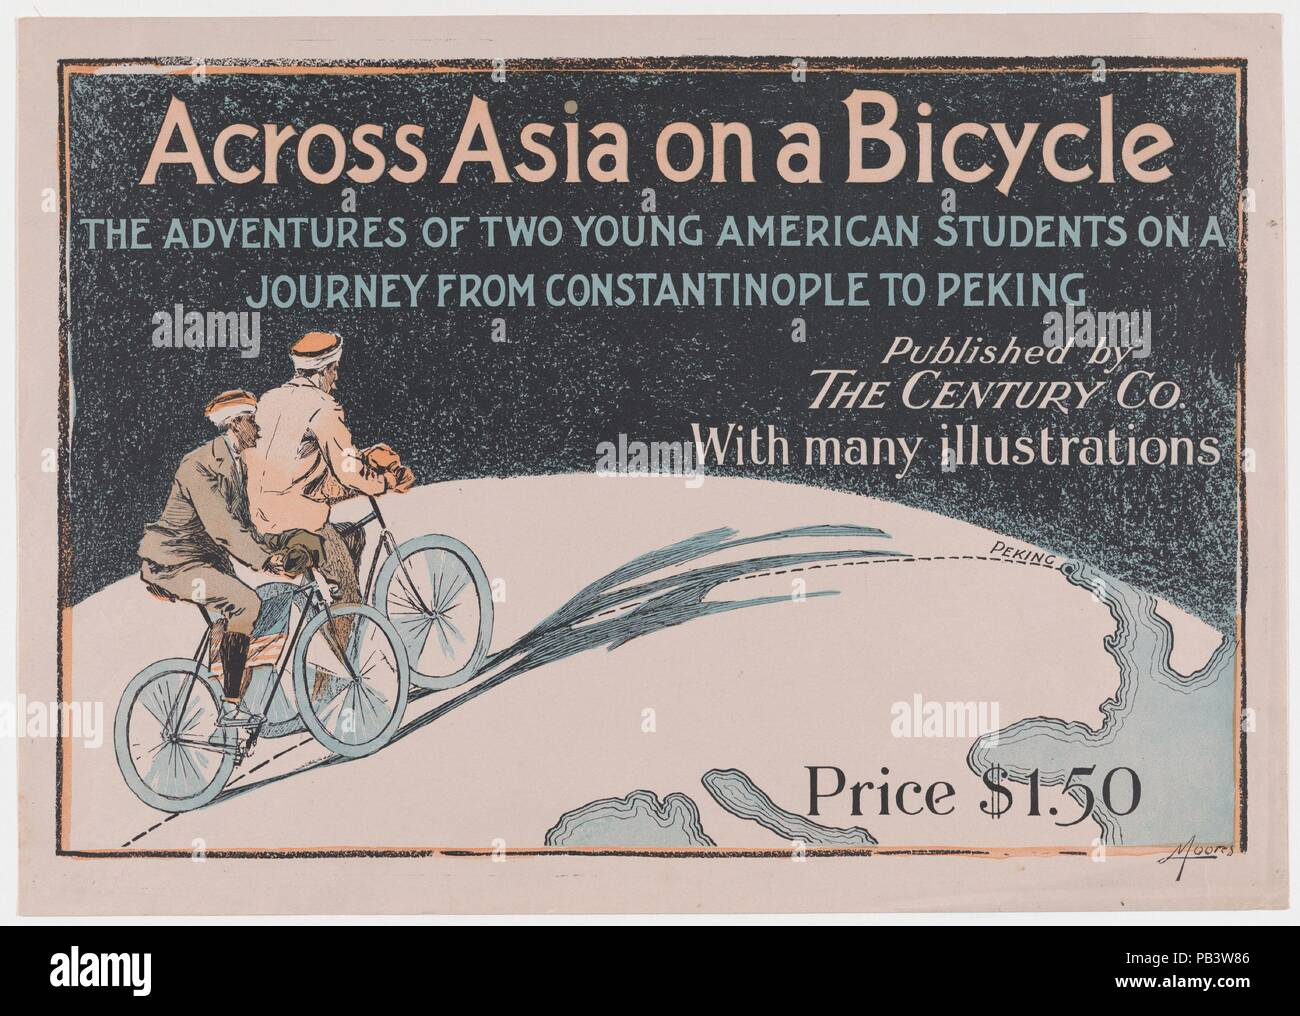 Across Asia on a Bicycle: The Adventures of Two Young American Students on a Journey From Constantinople to Peking. Artist: Albert J. Moores (American, active 1890s). Dimensions: Sheet: 12 in. × 16 15/16 in. (30.5 × 43.1 cm)  Image: 10 11/16 × 15 15/16 in. (27.2 × 40.5 cm). Publisher: The Century Company. Date: 1894. Museum: Metropolitan Museum of Art, New York, USA. - Stock Image